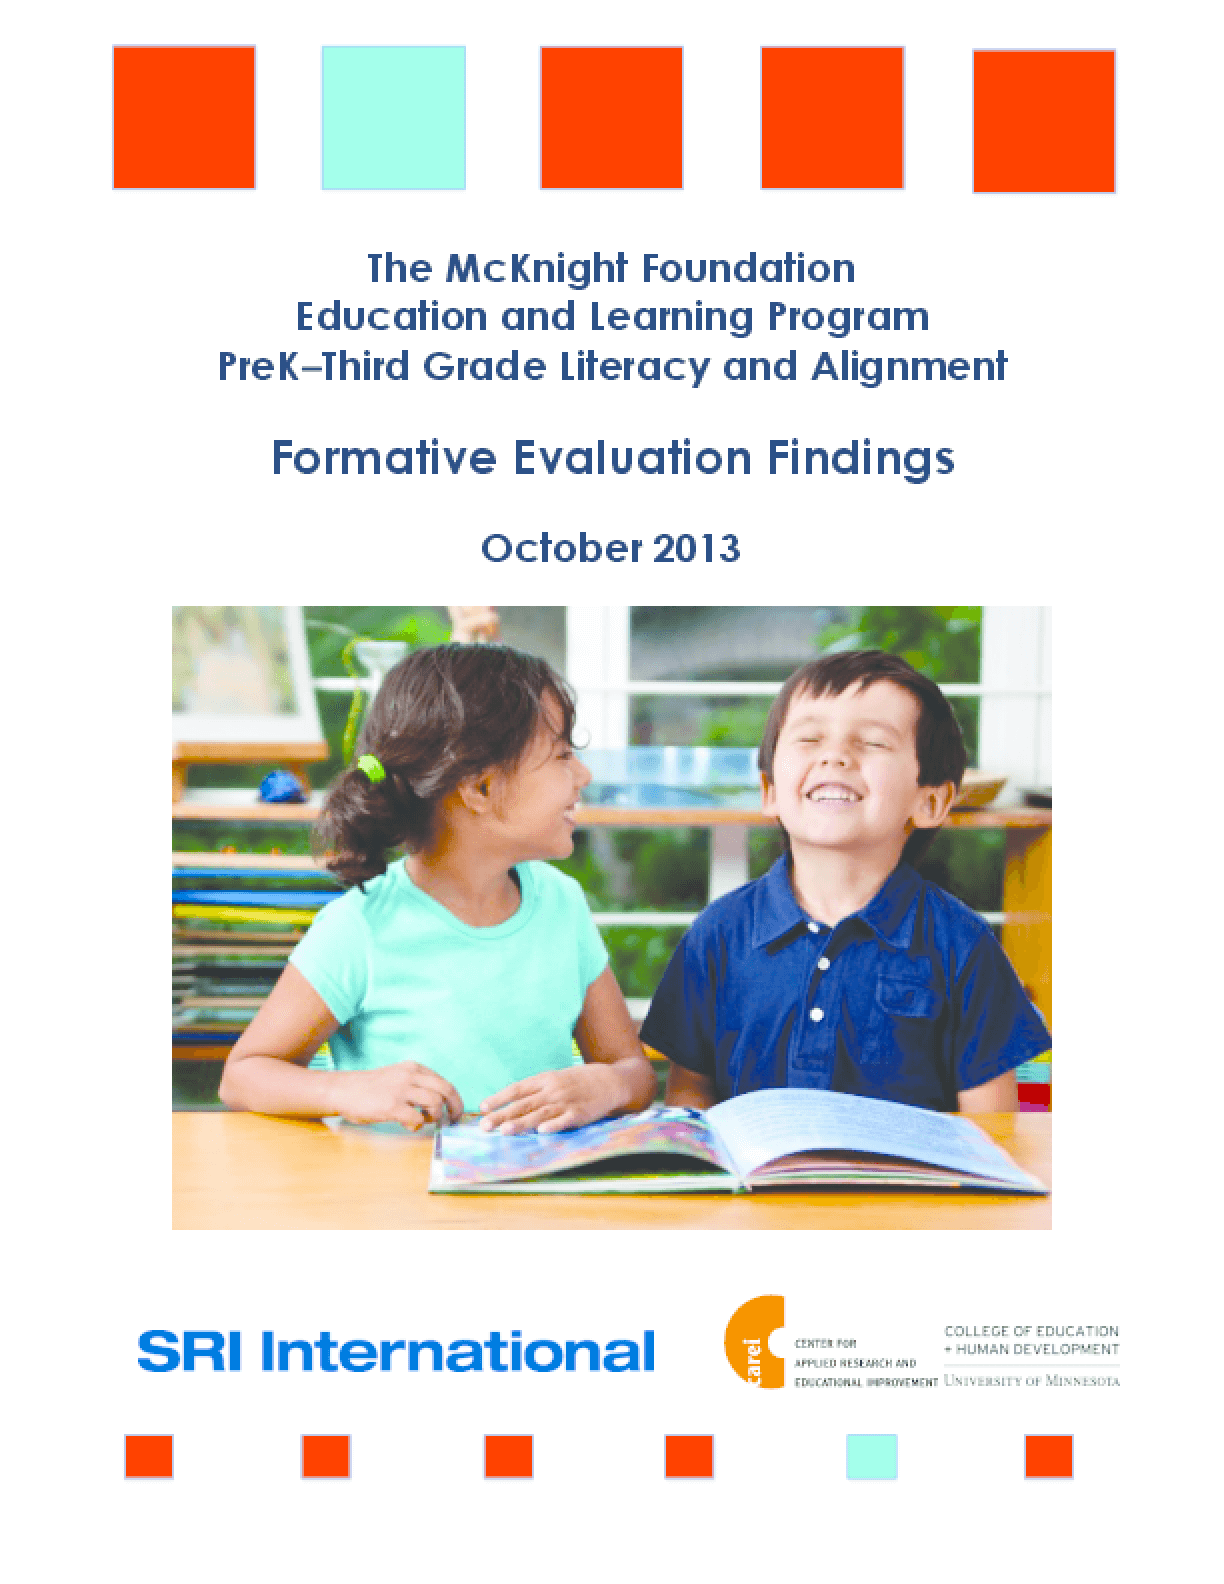 The McKnight Foundation Education and Learning Program PreK-Third Grade Literacy and Alignment: Formative Evaluation Findings